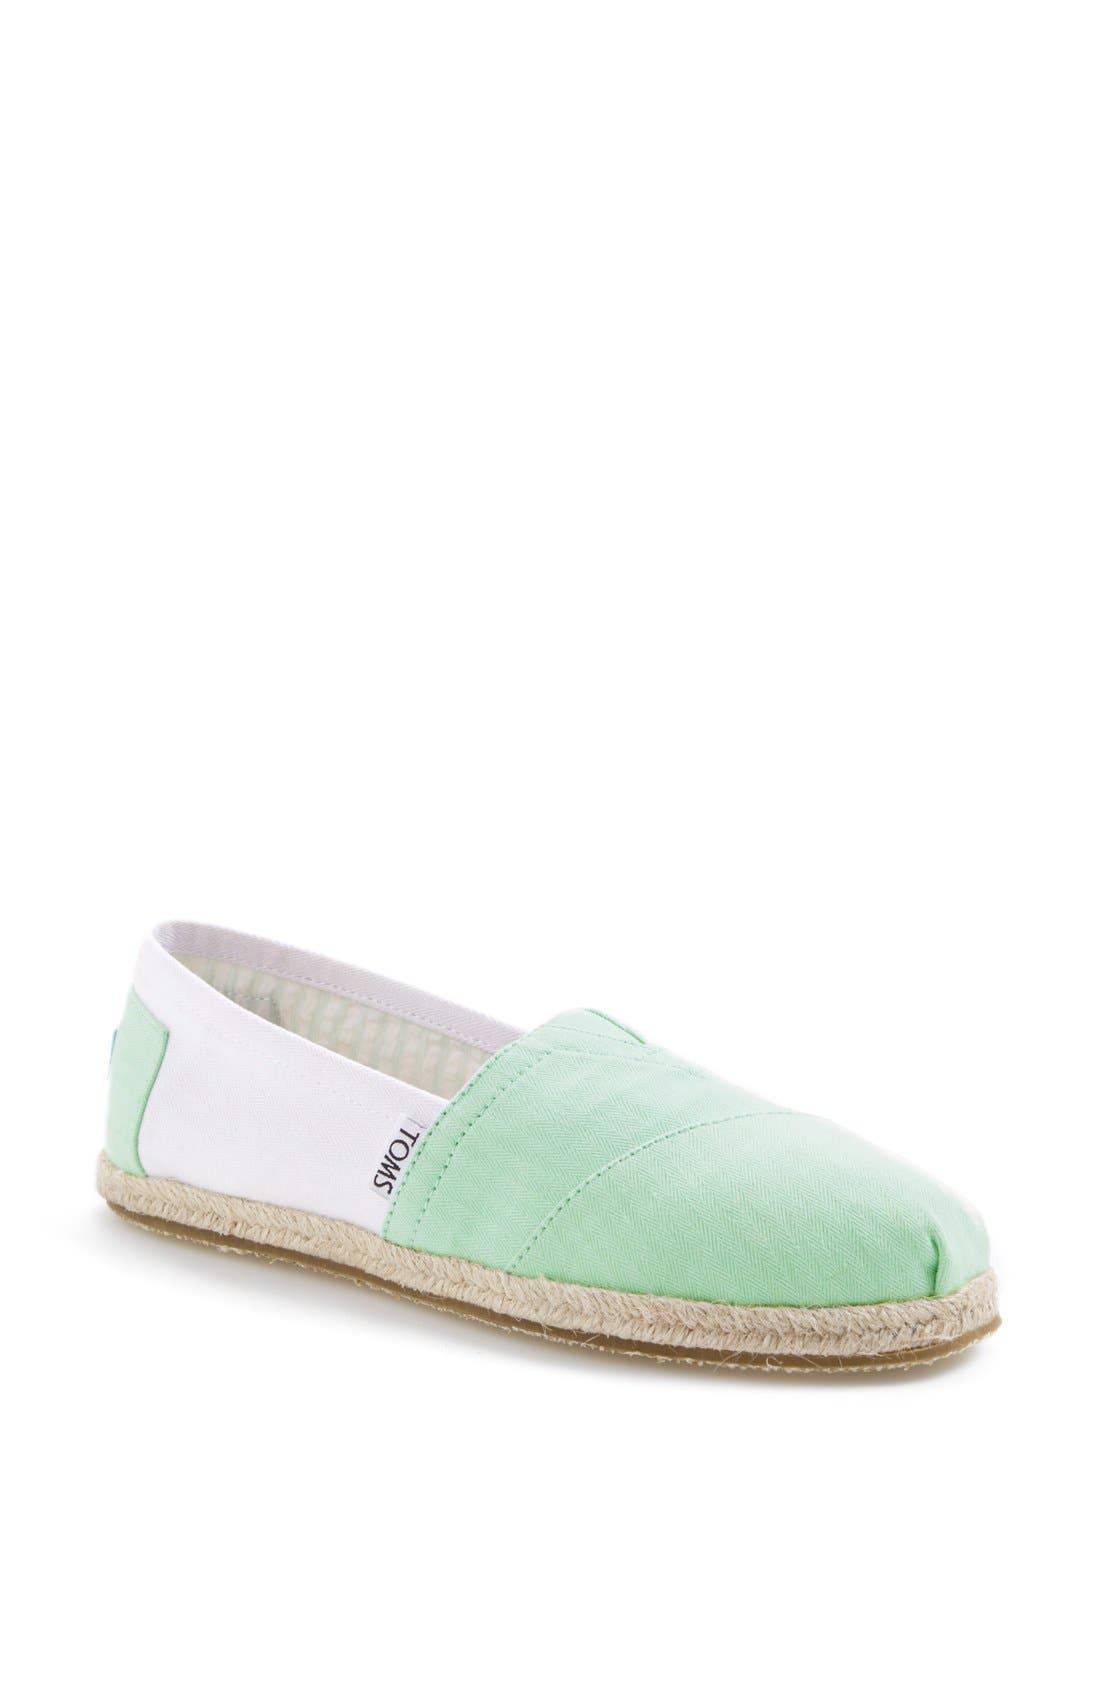 Alternate Image 1 Selected - TOMS 'Classic - Colorblock' Slip-On (Women)